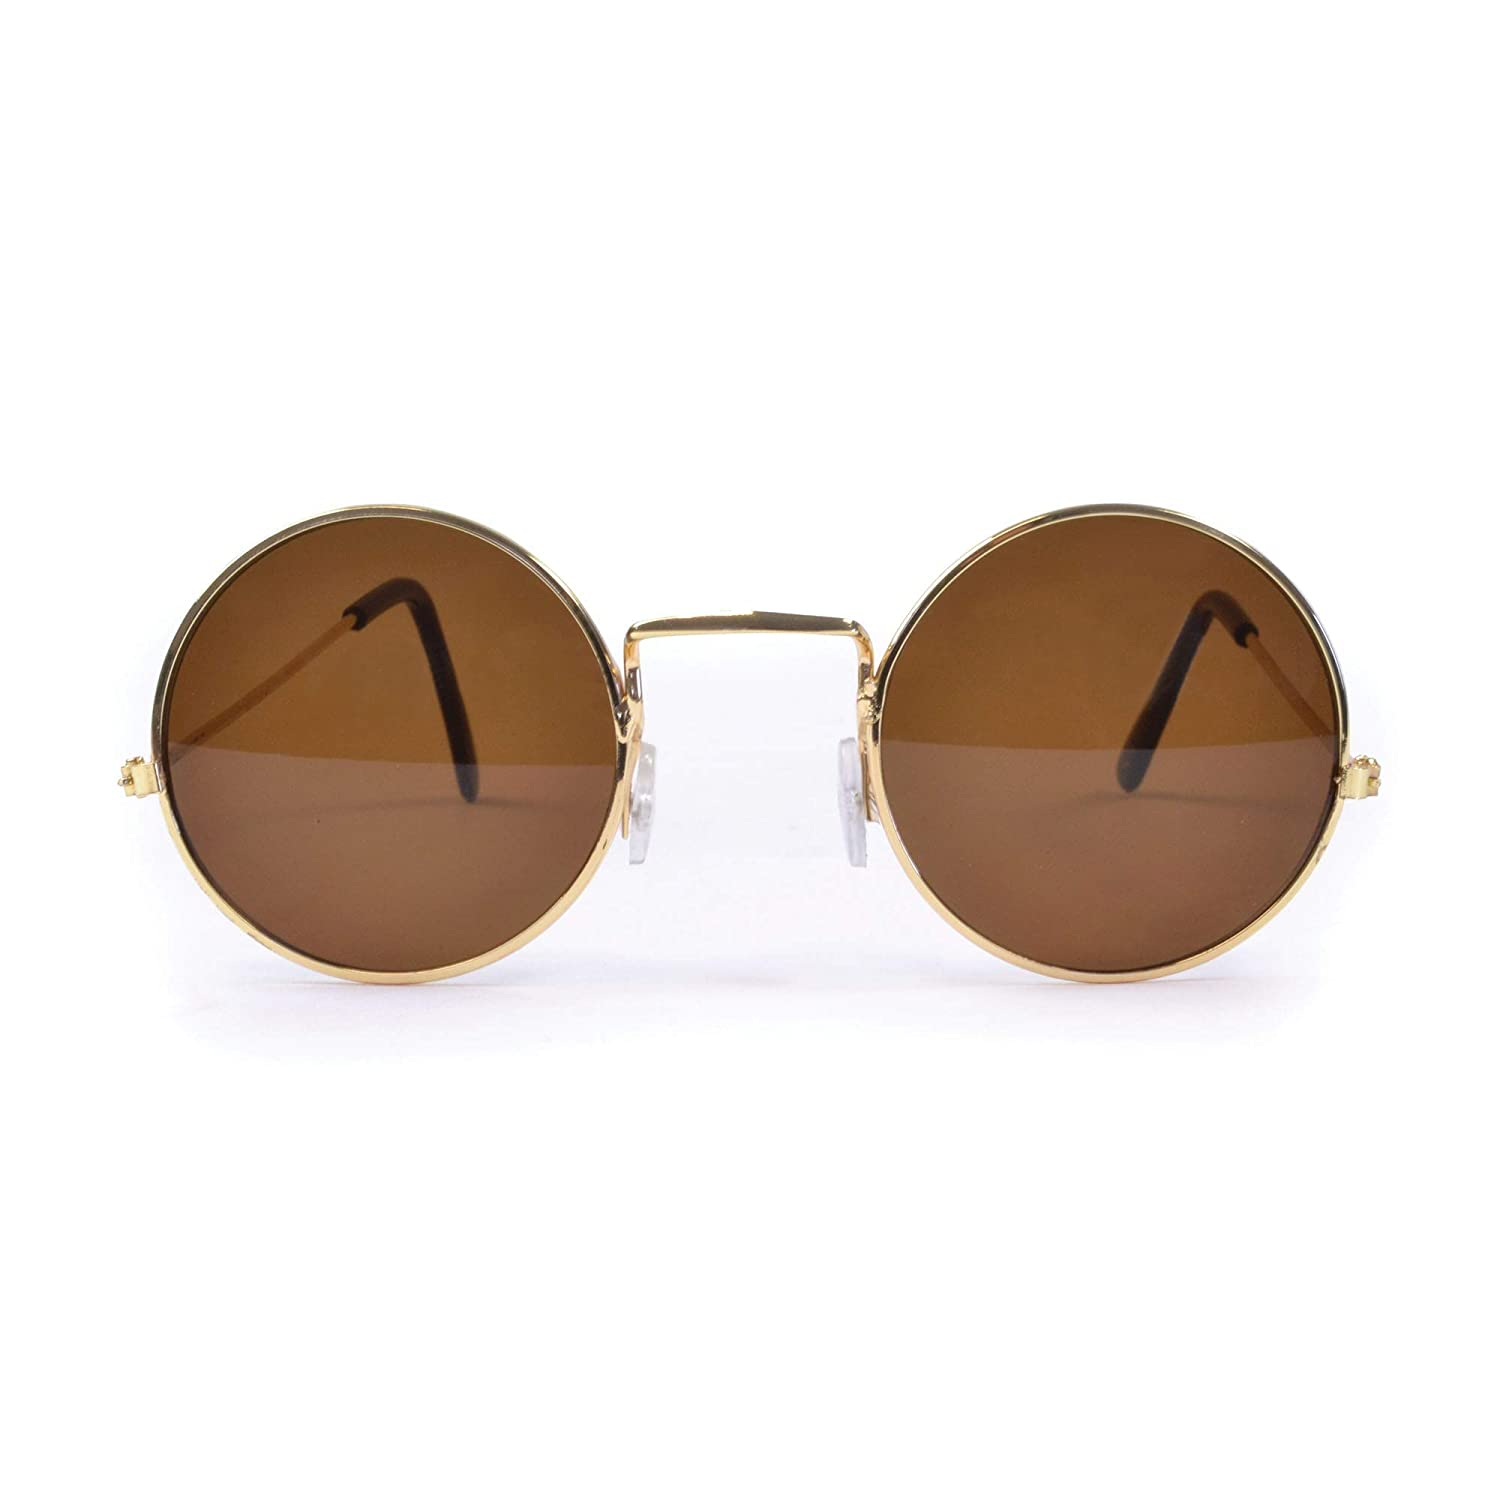 fancy dress warehouse Round Black Sunglasses Glasses Beattles John Lennon Fancy Dress by